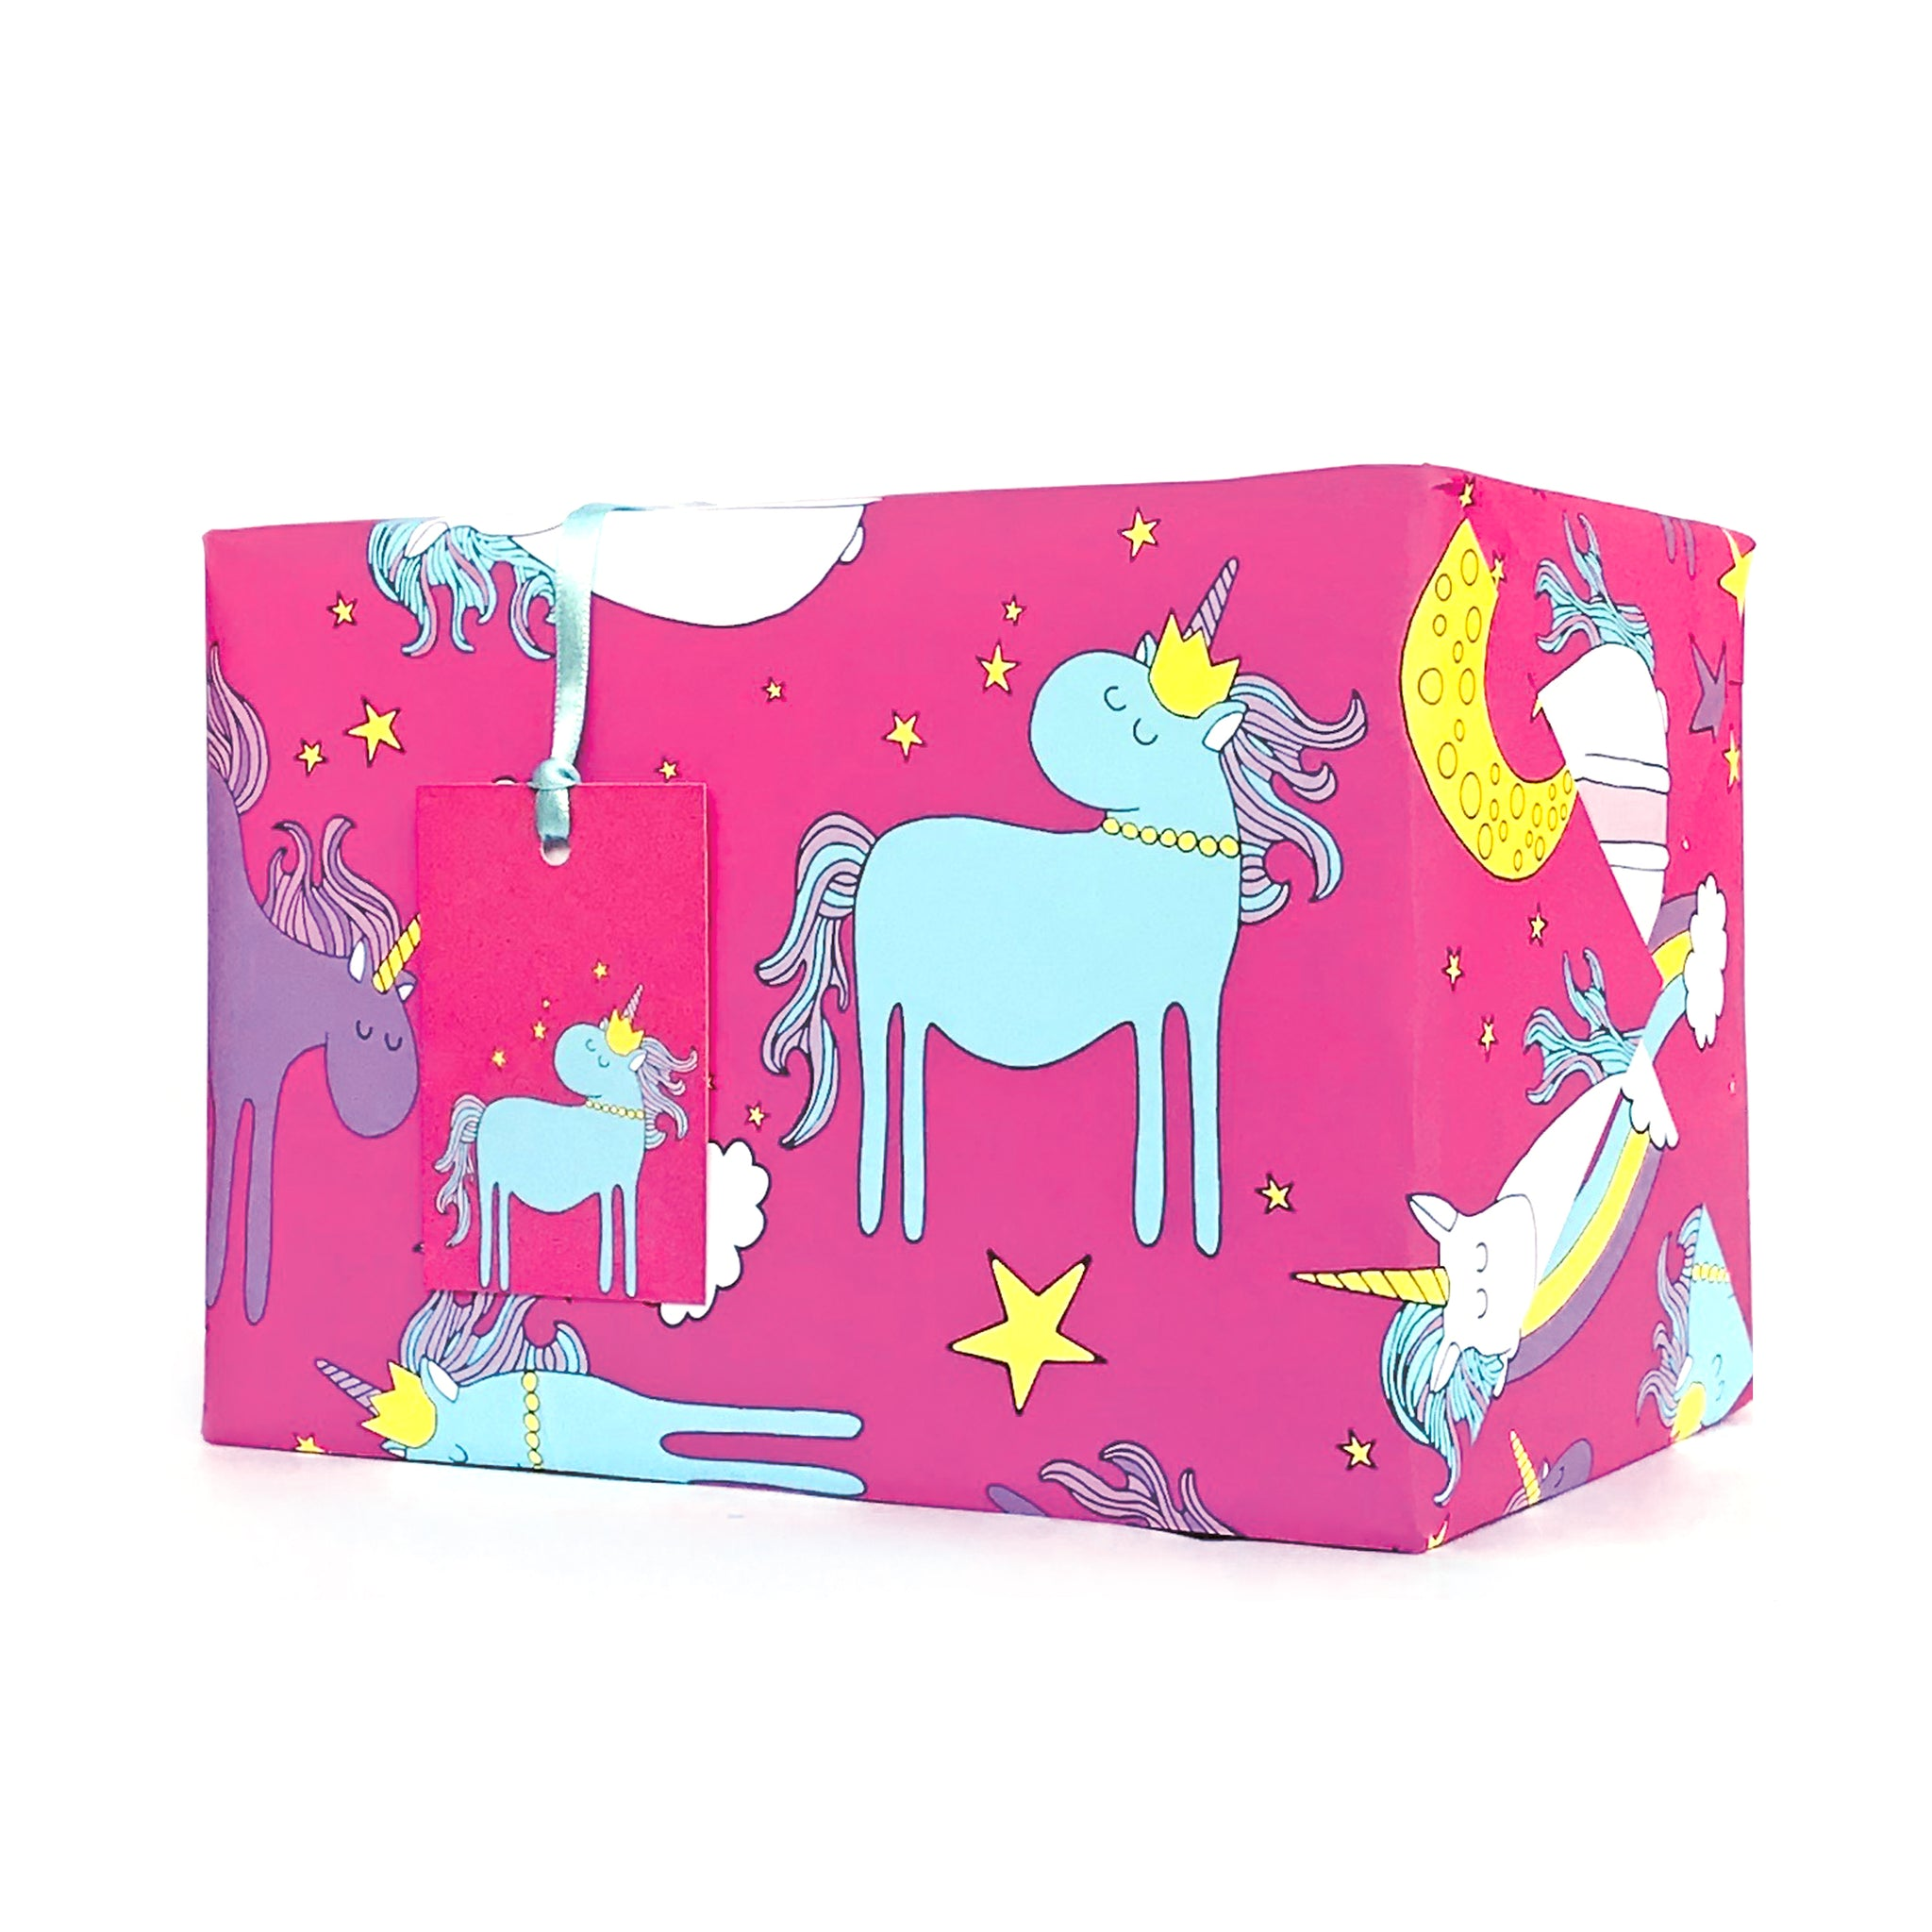 Unicorn Wrapping Paper and Gift Tags